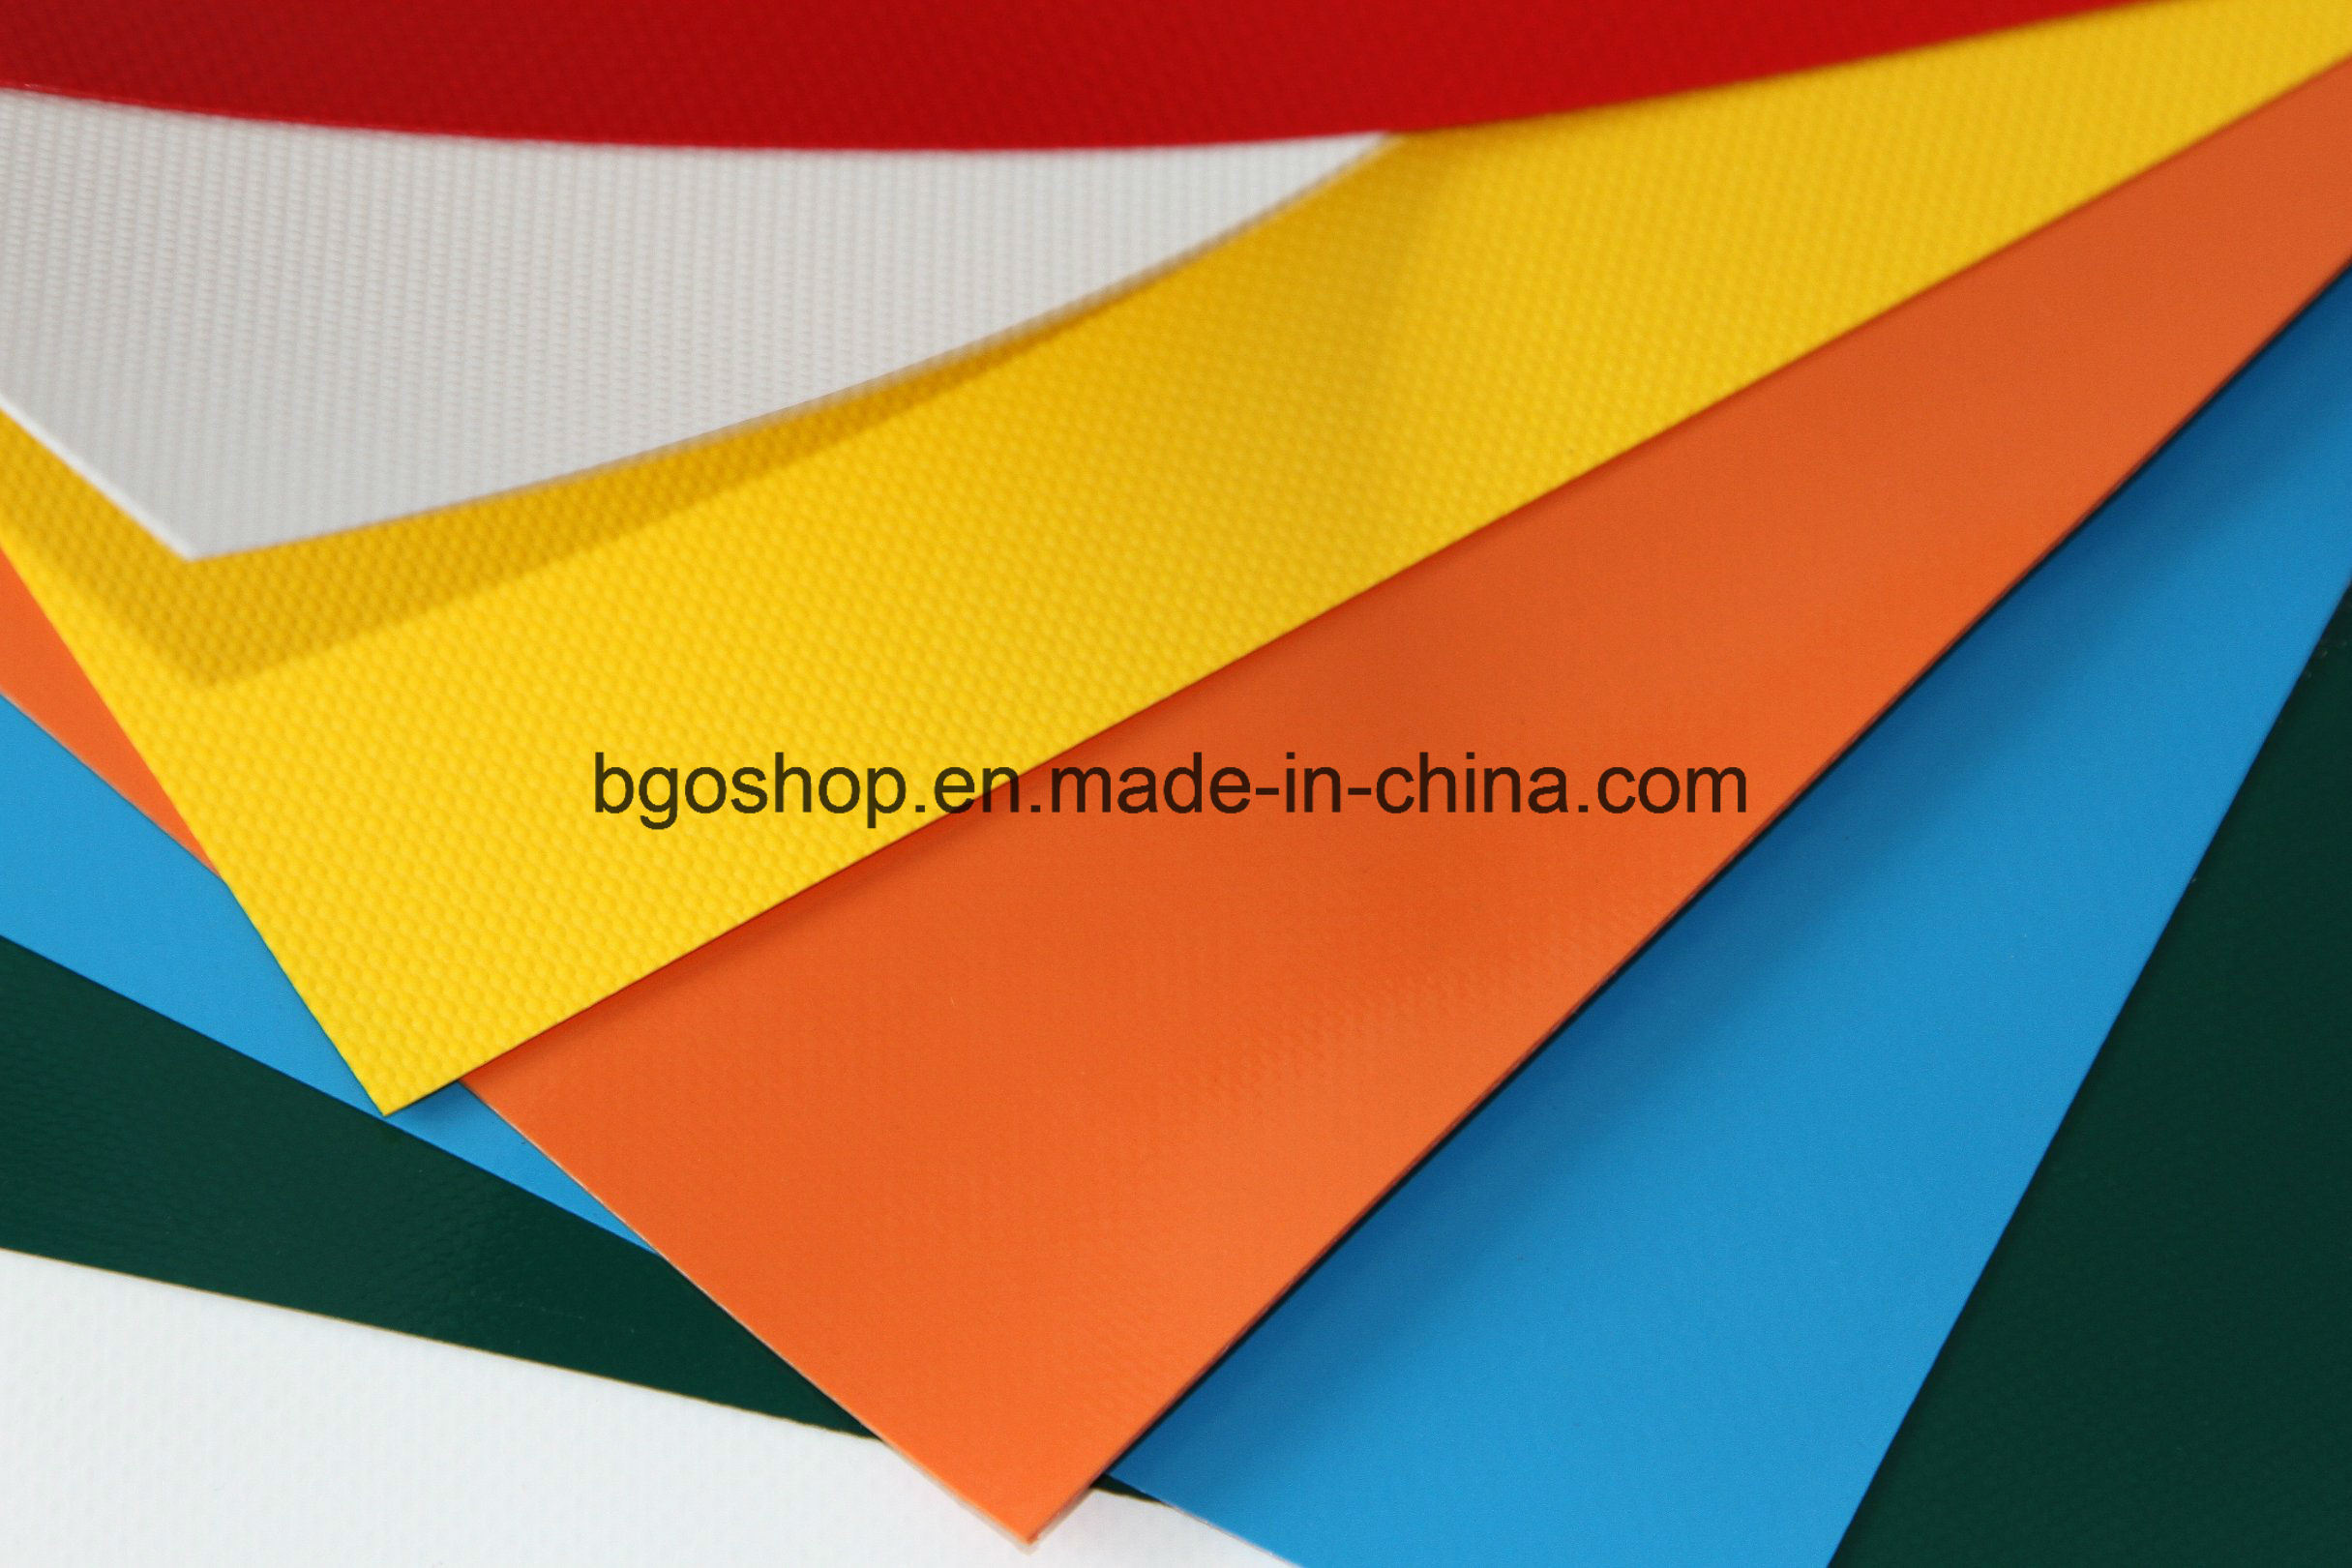 OEM High Quality PVC Coated Tarpaulin